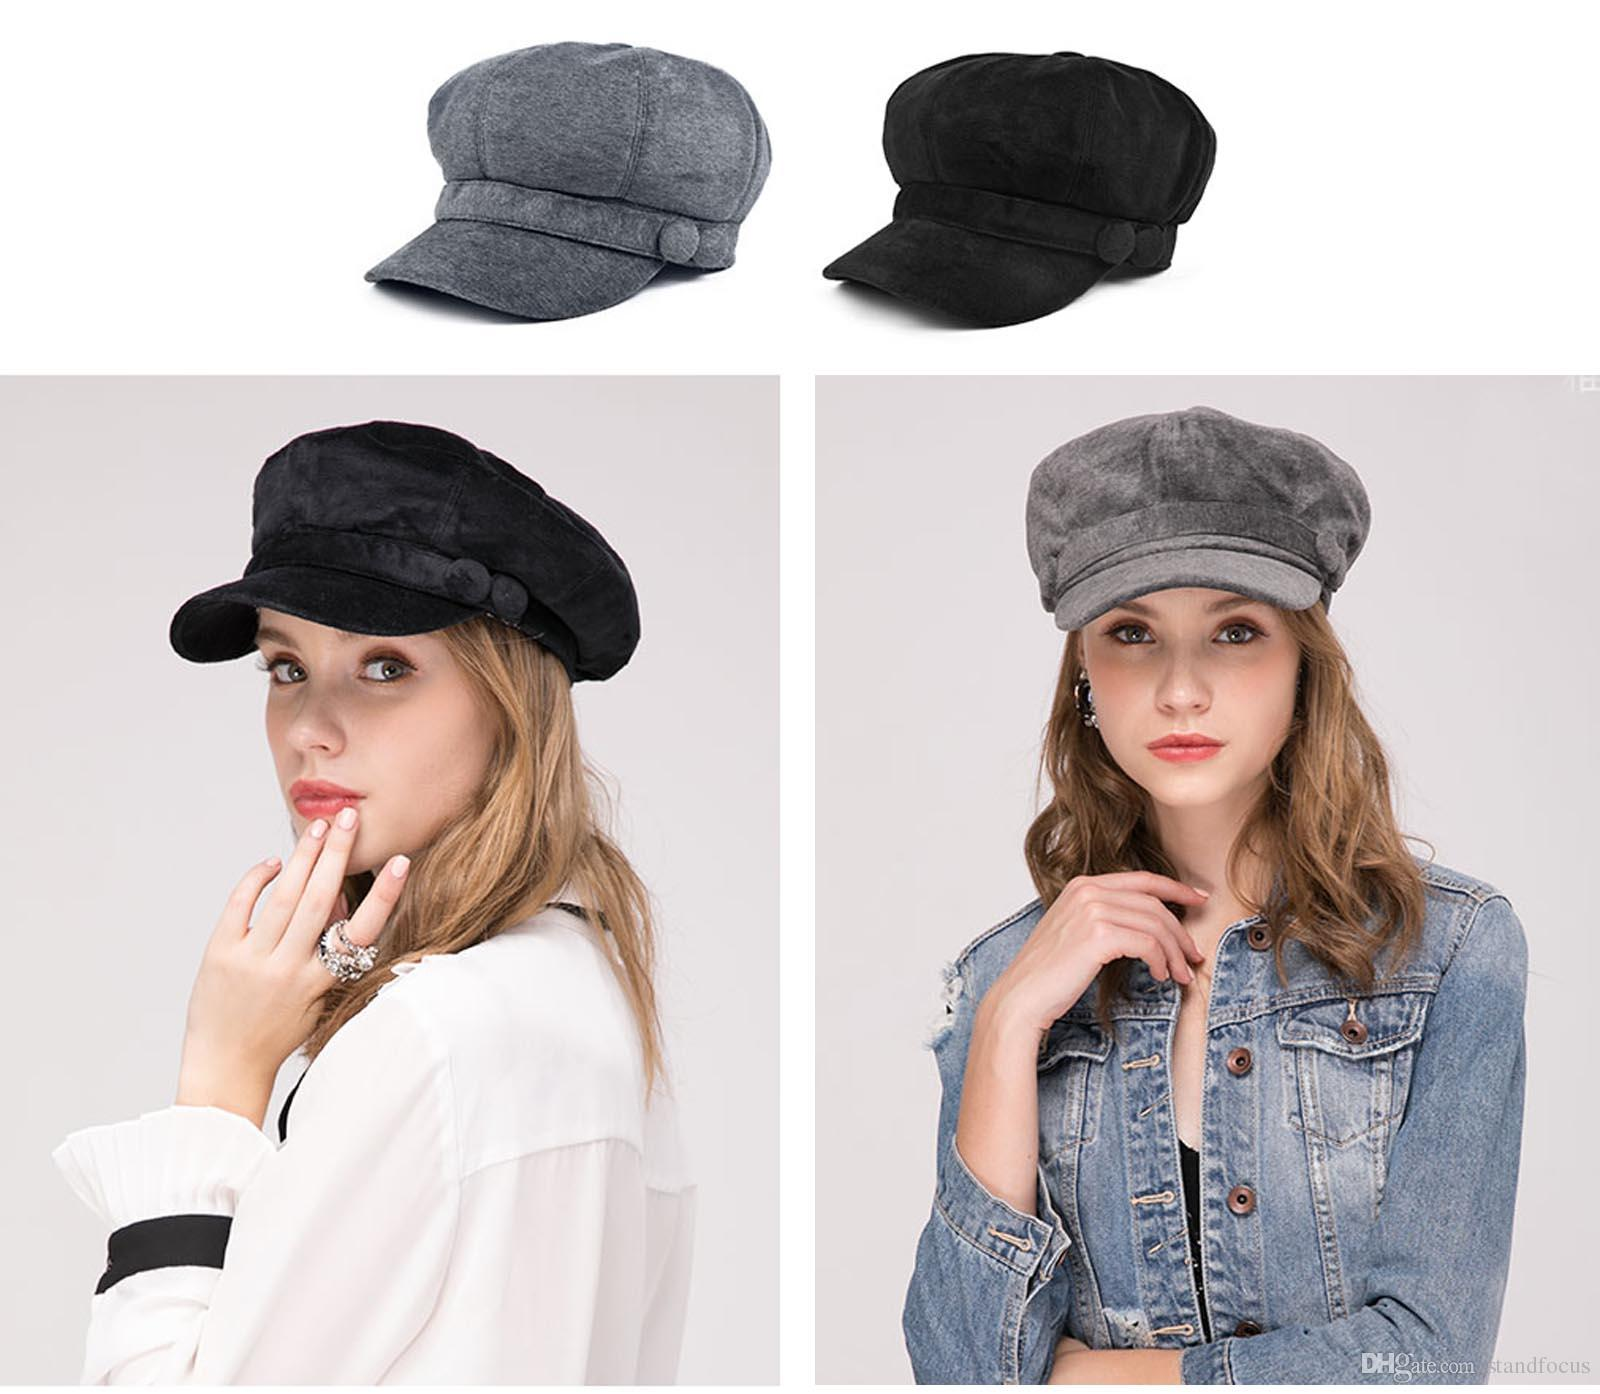 b3b806cd627f3 2019 Stand Focus Women Cabby Baker Boy Gatsby Velvet Hat Newsboy Cap Ladies  Fashion Fall Winter Spring Black Gray From Standfocus